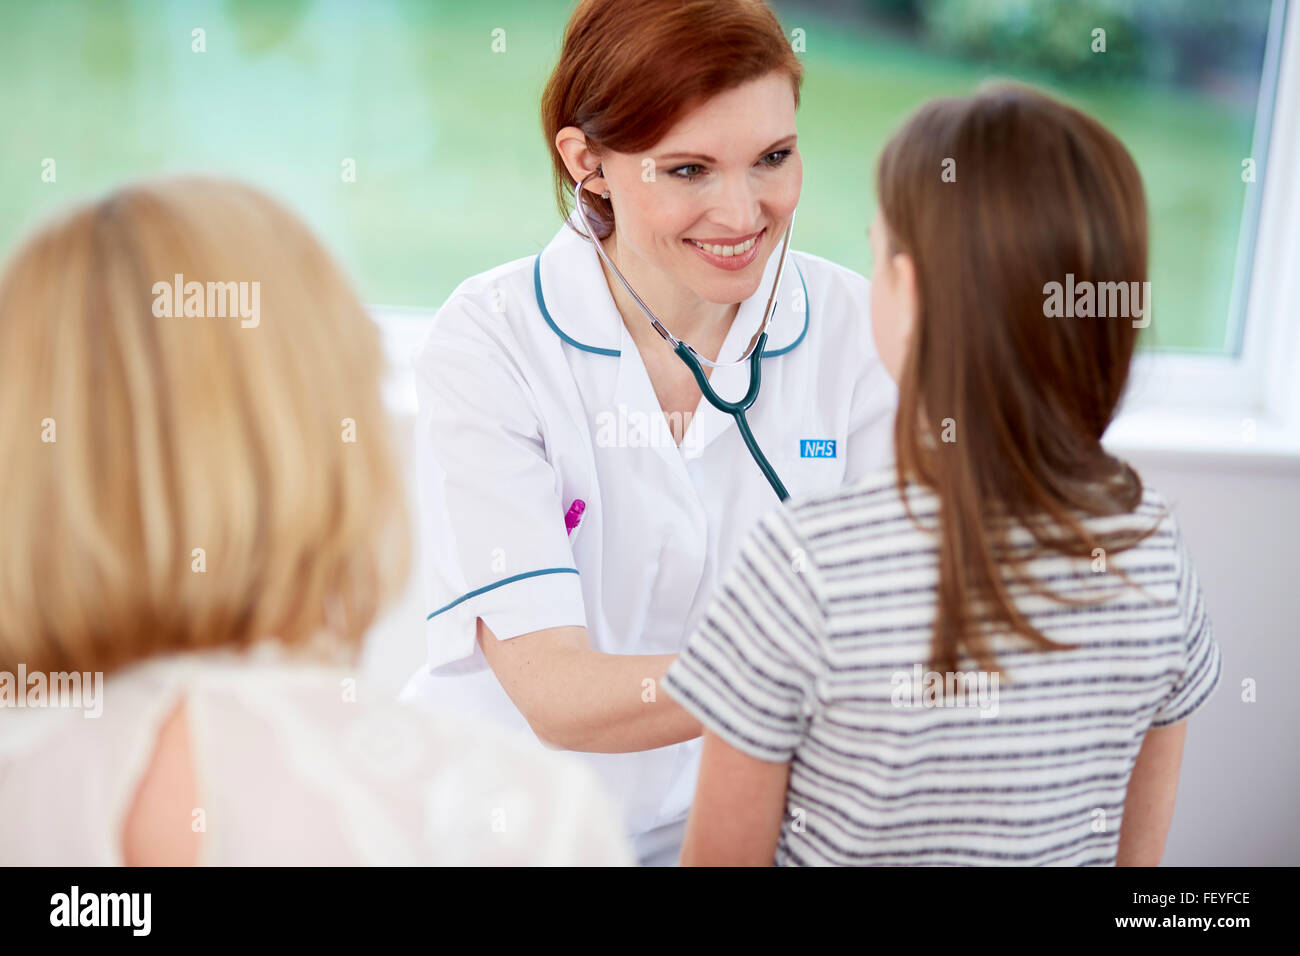 Doctor talking to patient - Stock Image